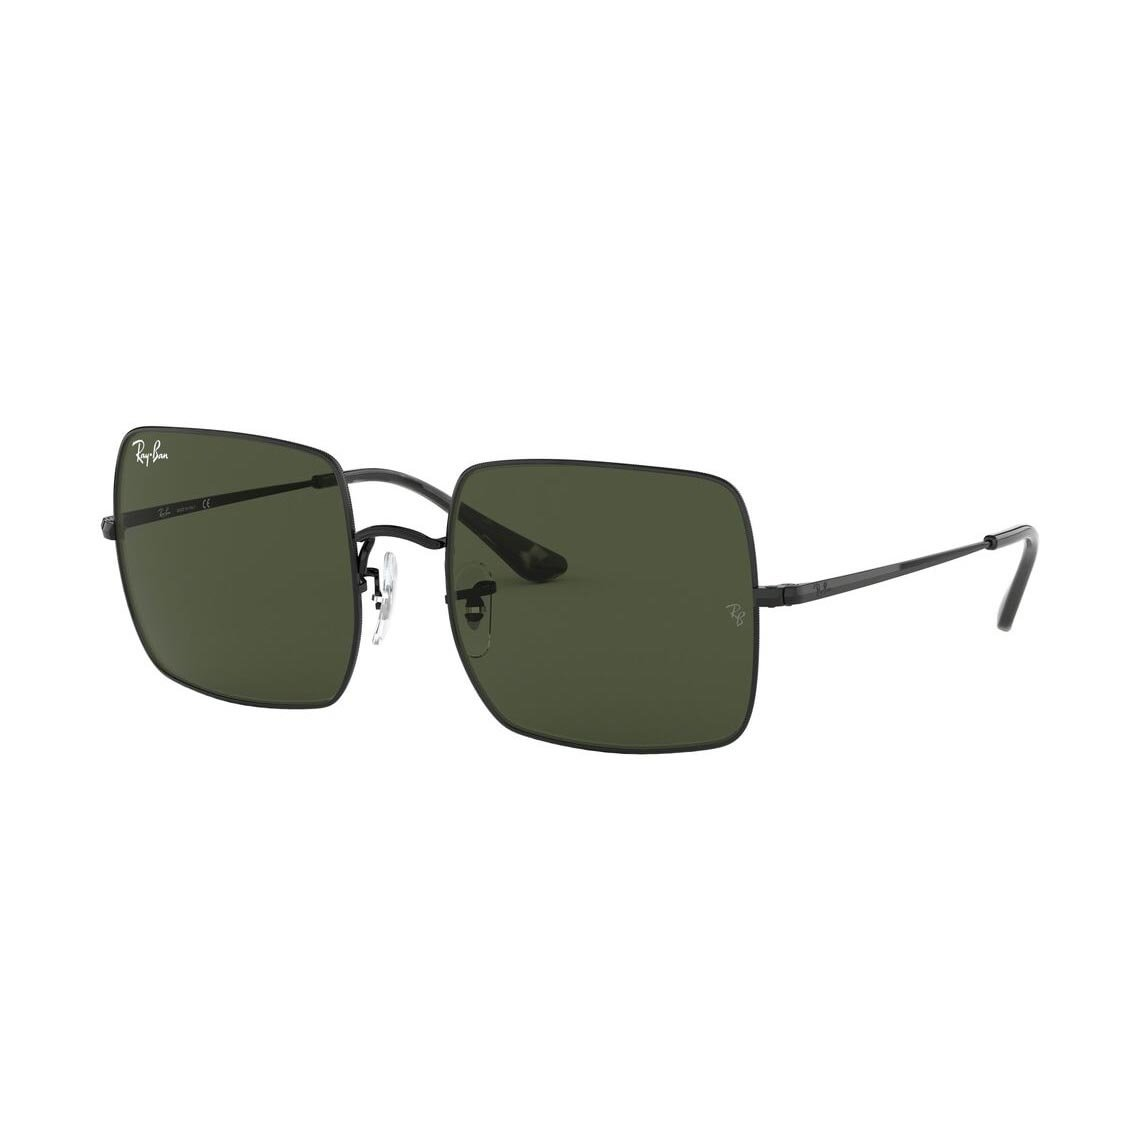 Ray-Ban Square 1971 Classic RB1971 914831 5419